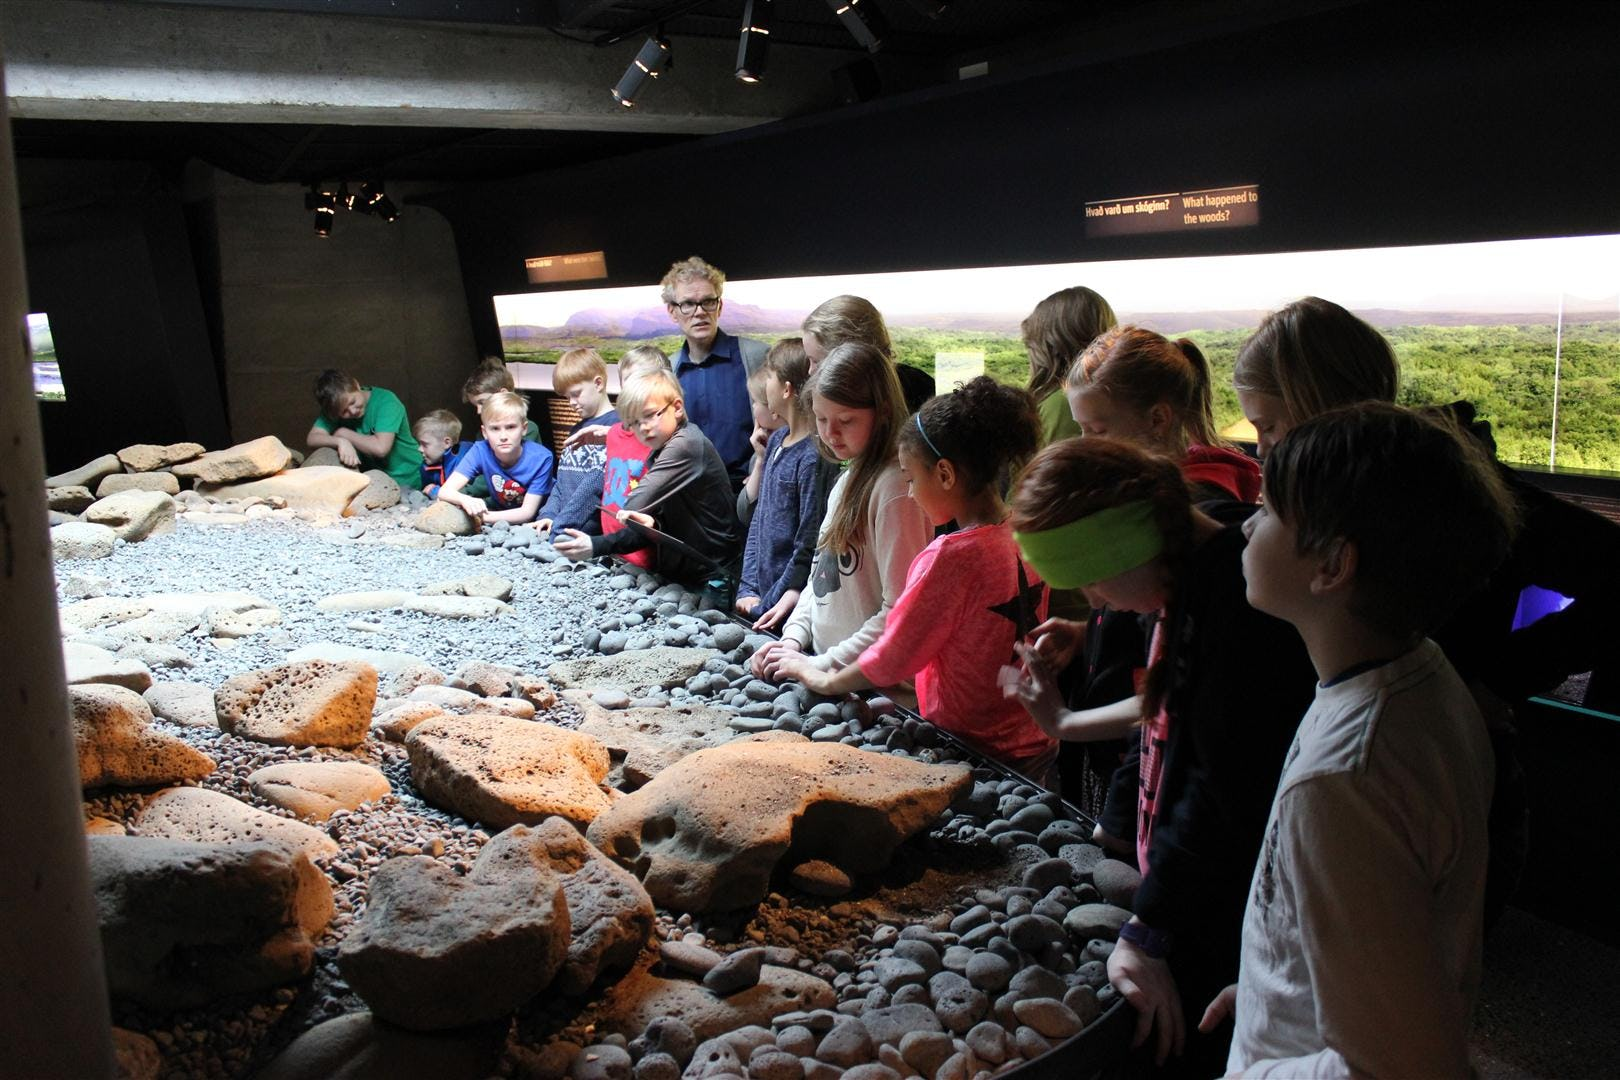 Kids will find plenty of interactive entertainment with the Reykjavík City Card.